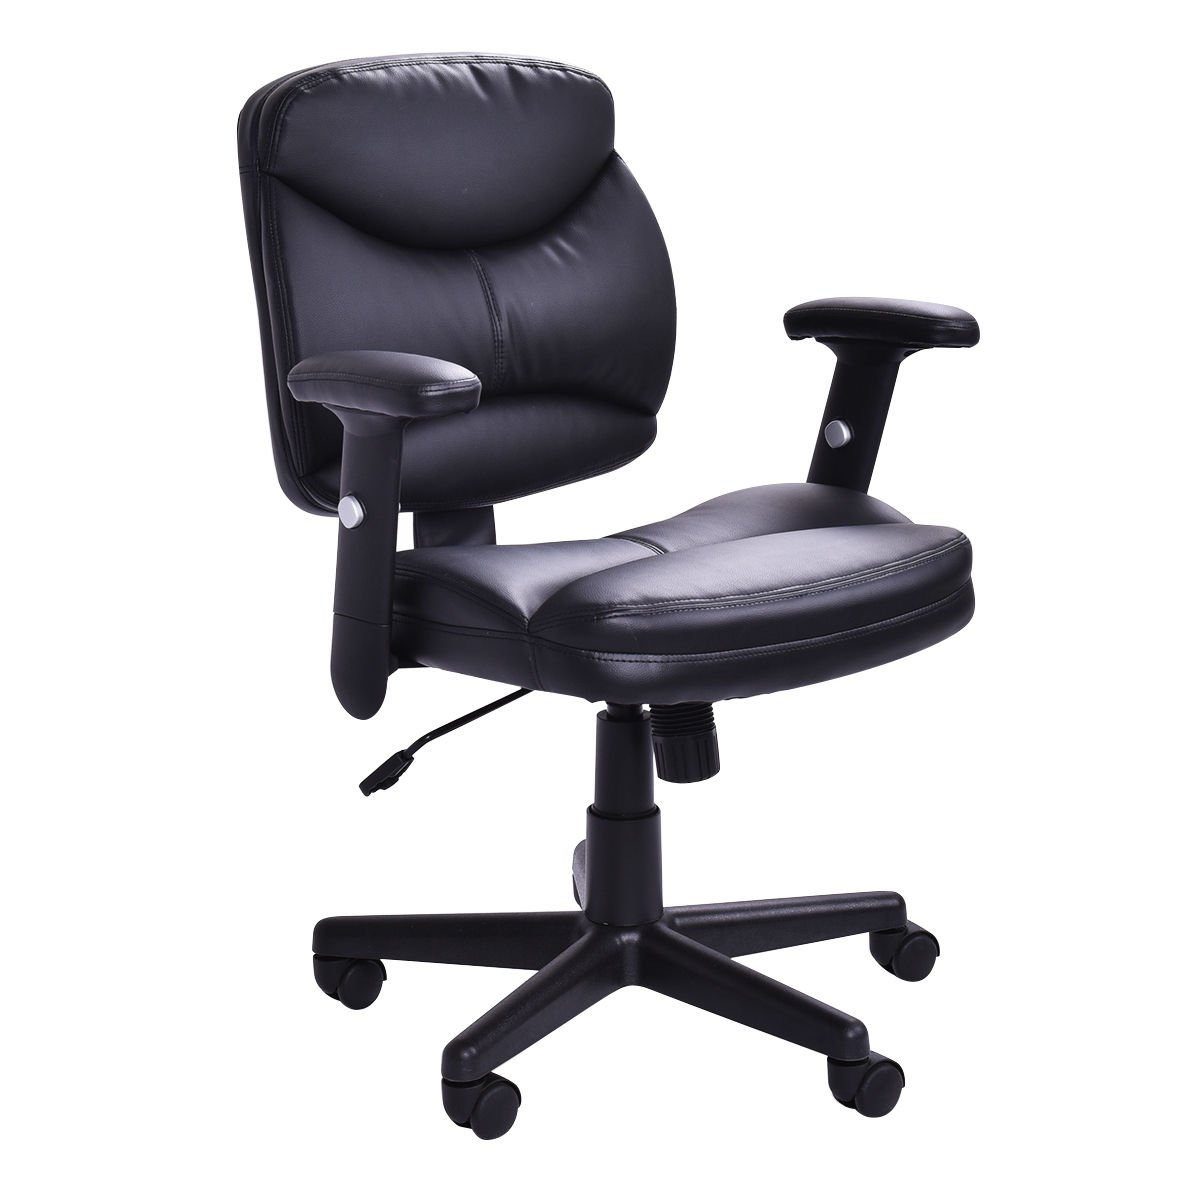 Officelax Office Chair PU Leather Mid Back Ergonomic Computer Desk Chair Executive Height Adjustable Modern Task Chair with Swivel Wheels, Black